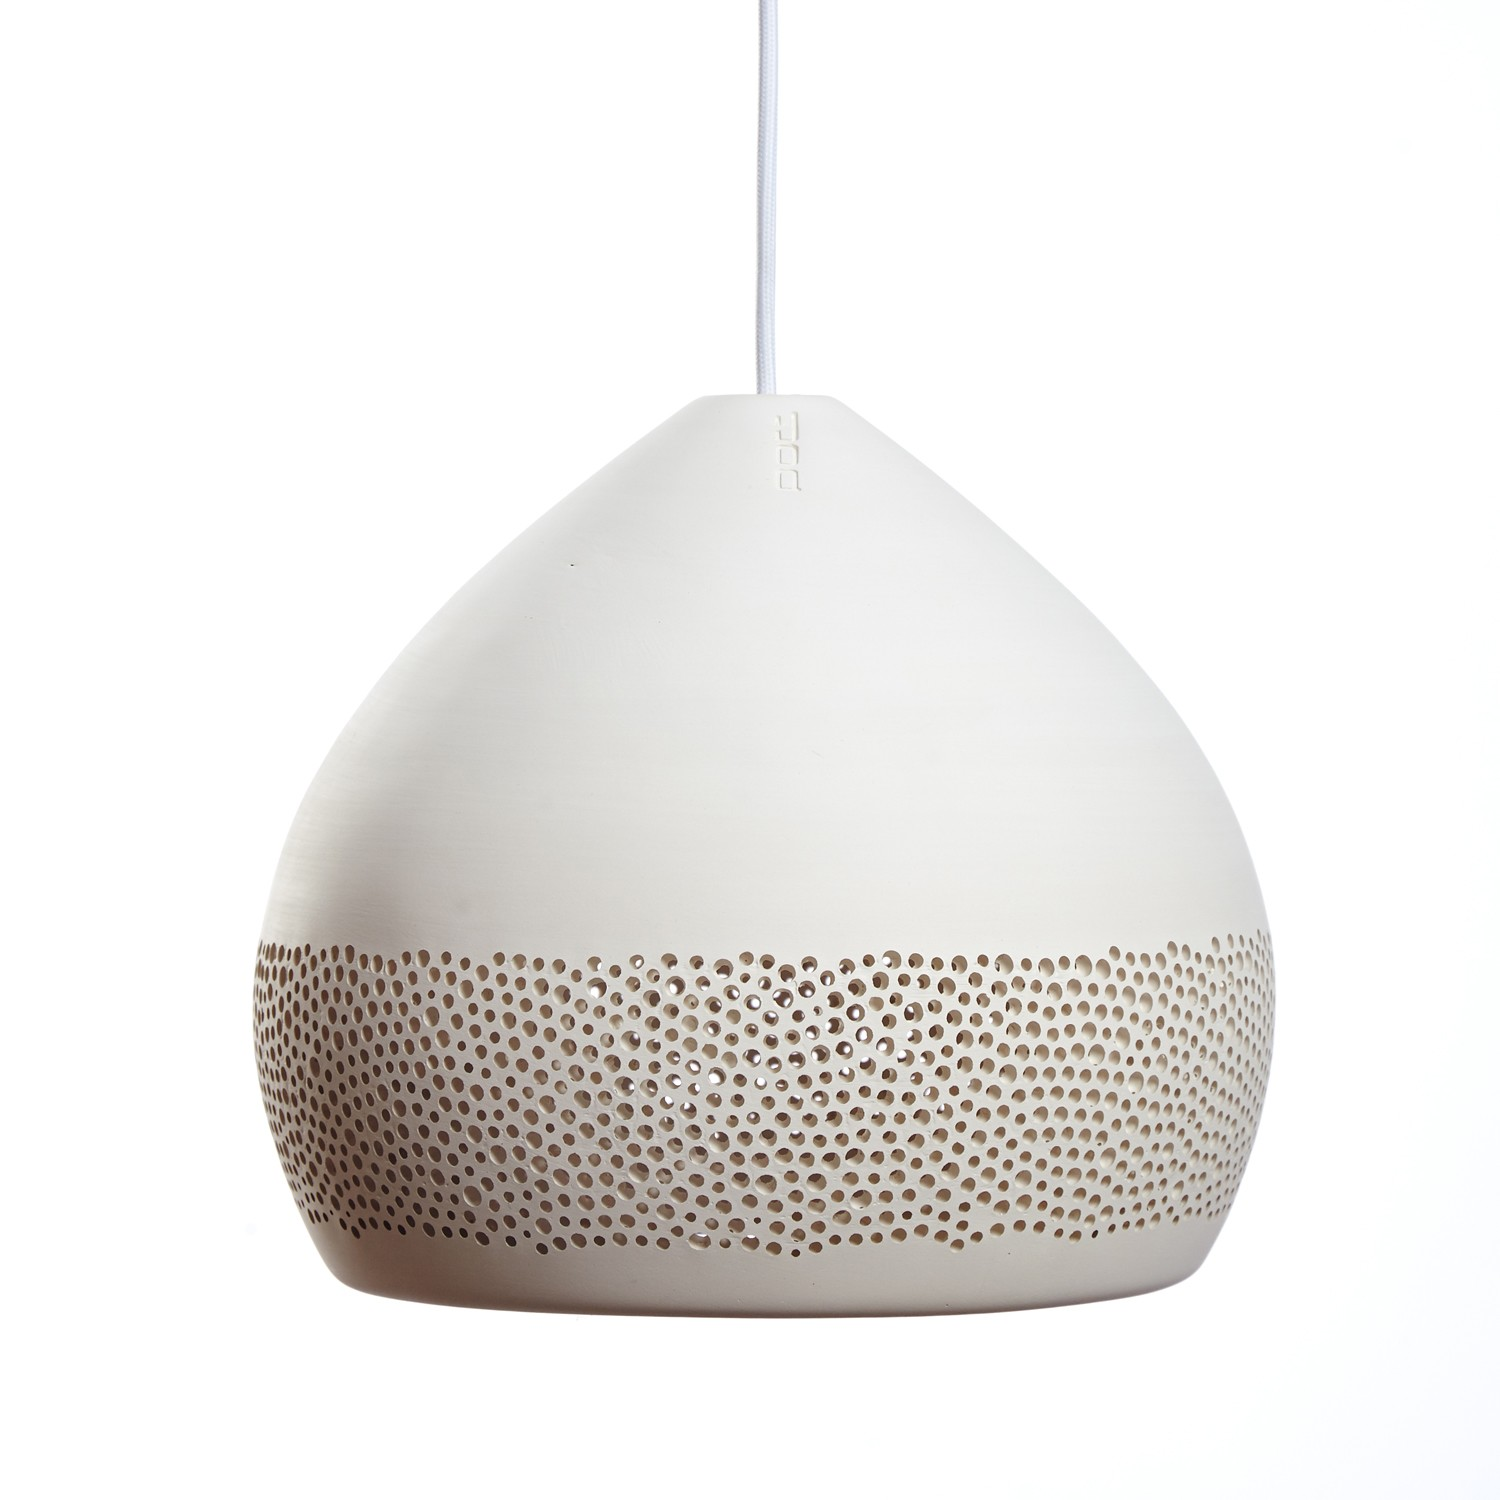 SpongeOh! Pendant Light White, 30 cm